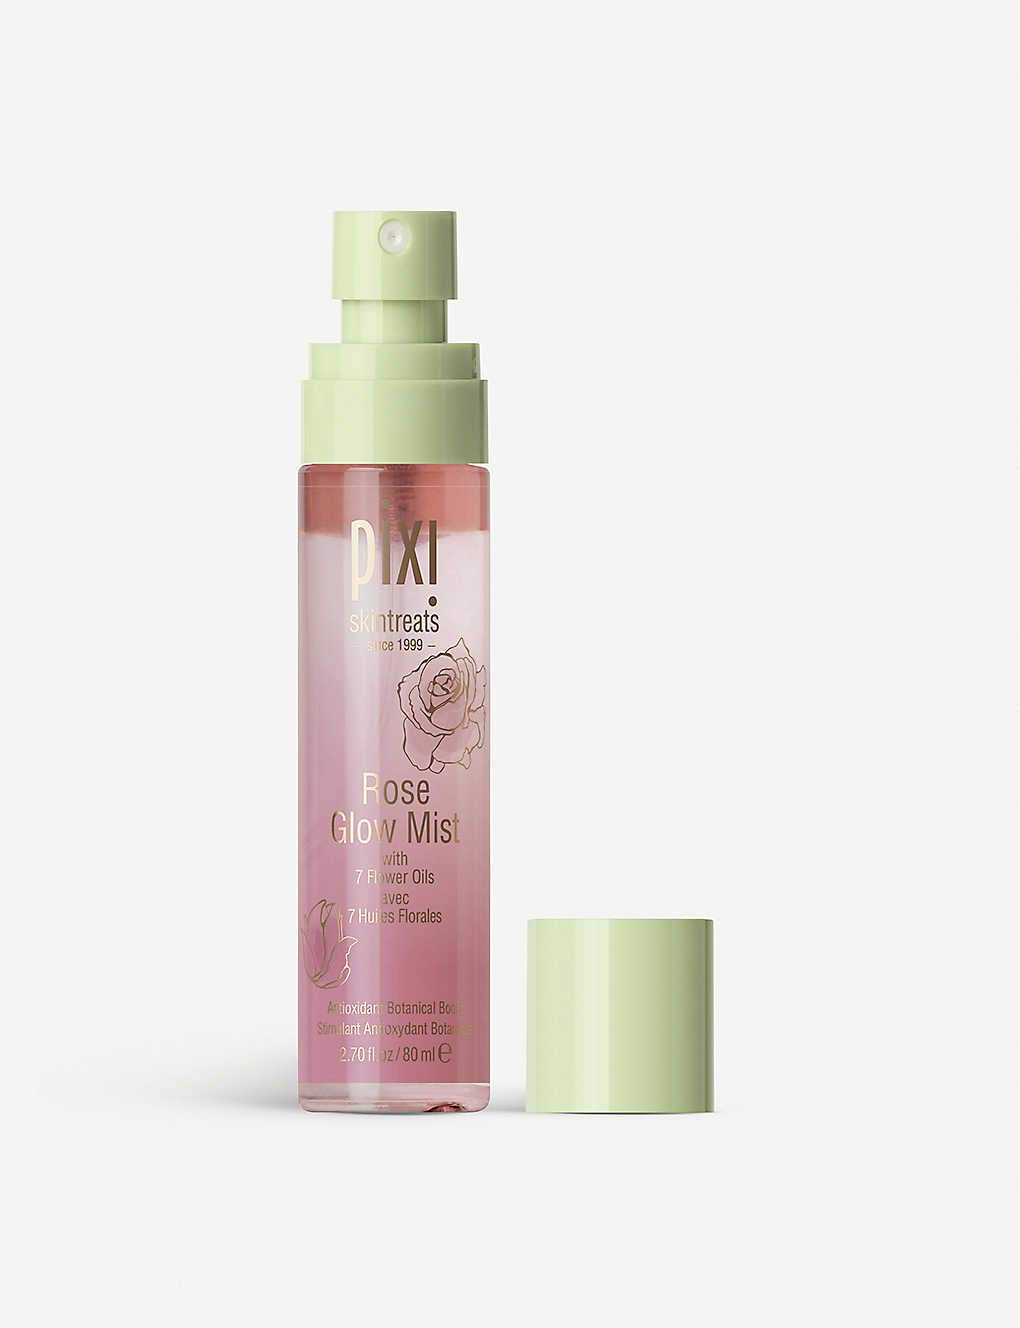 Pixi by Petra Rose Glow Mist - 2.70 fl oz Rose Glow